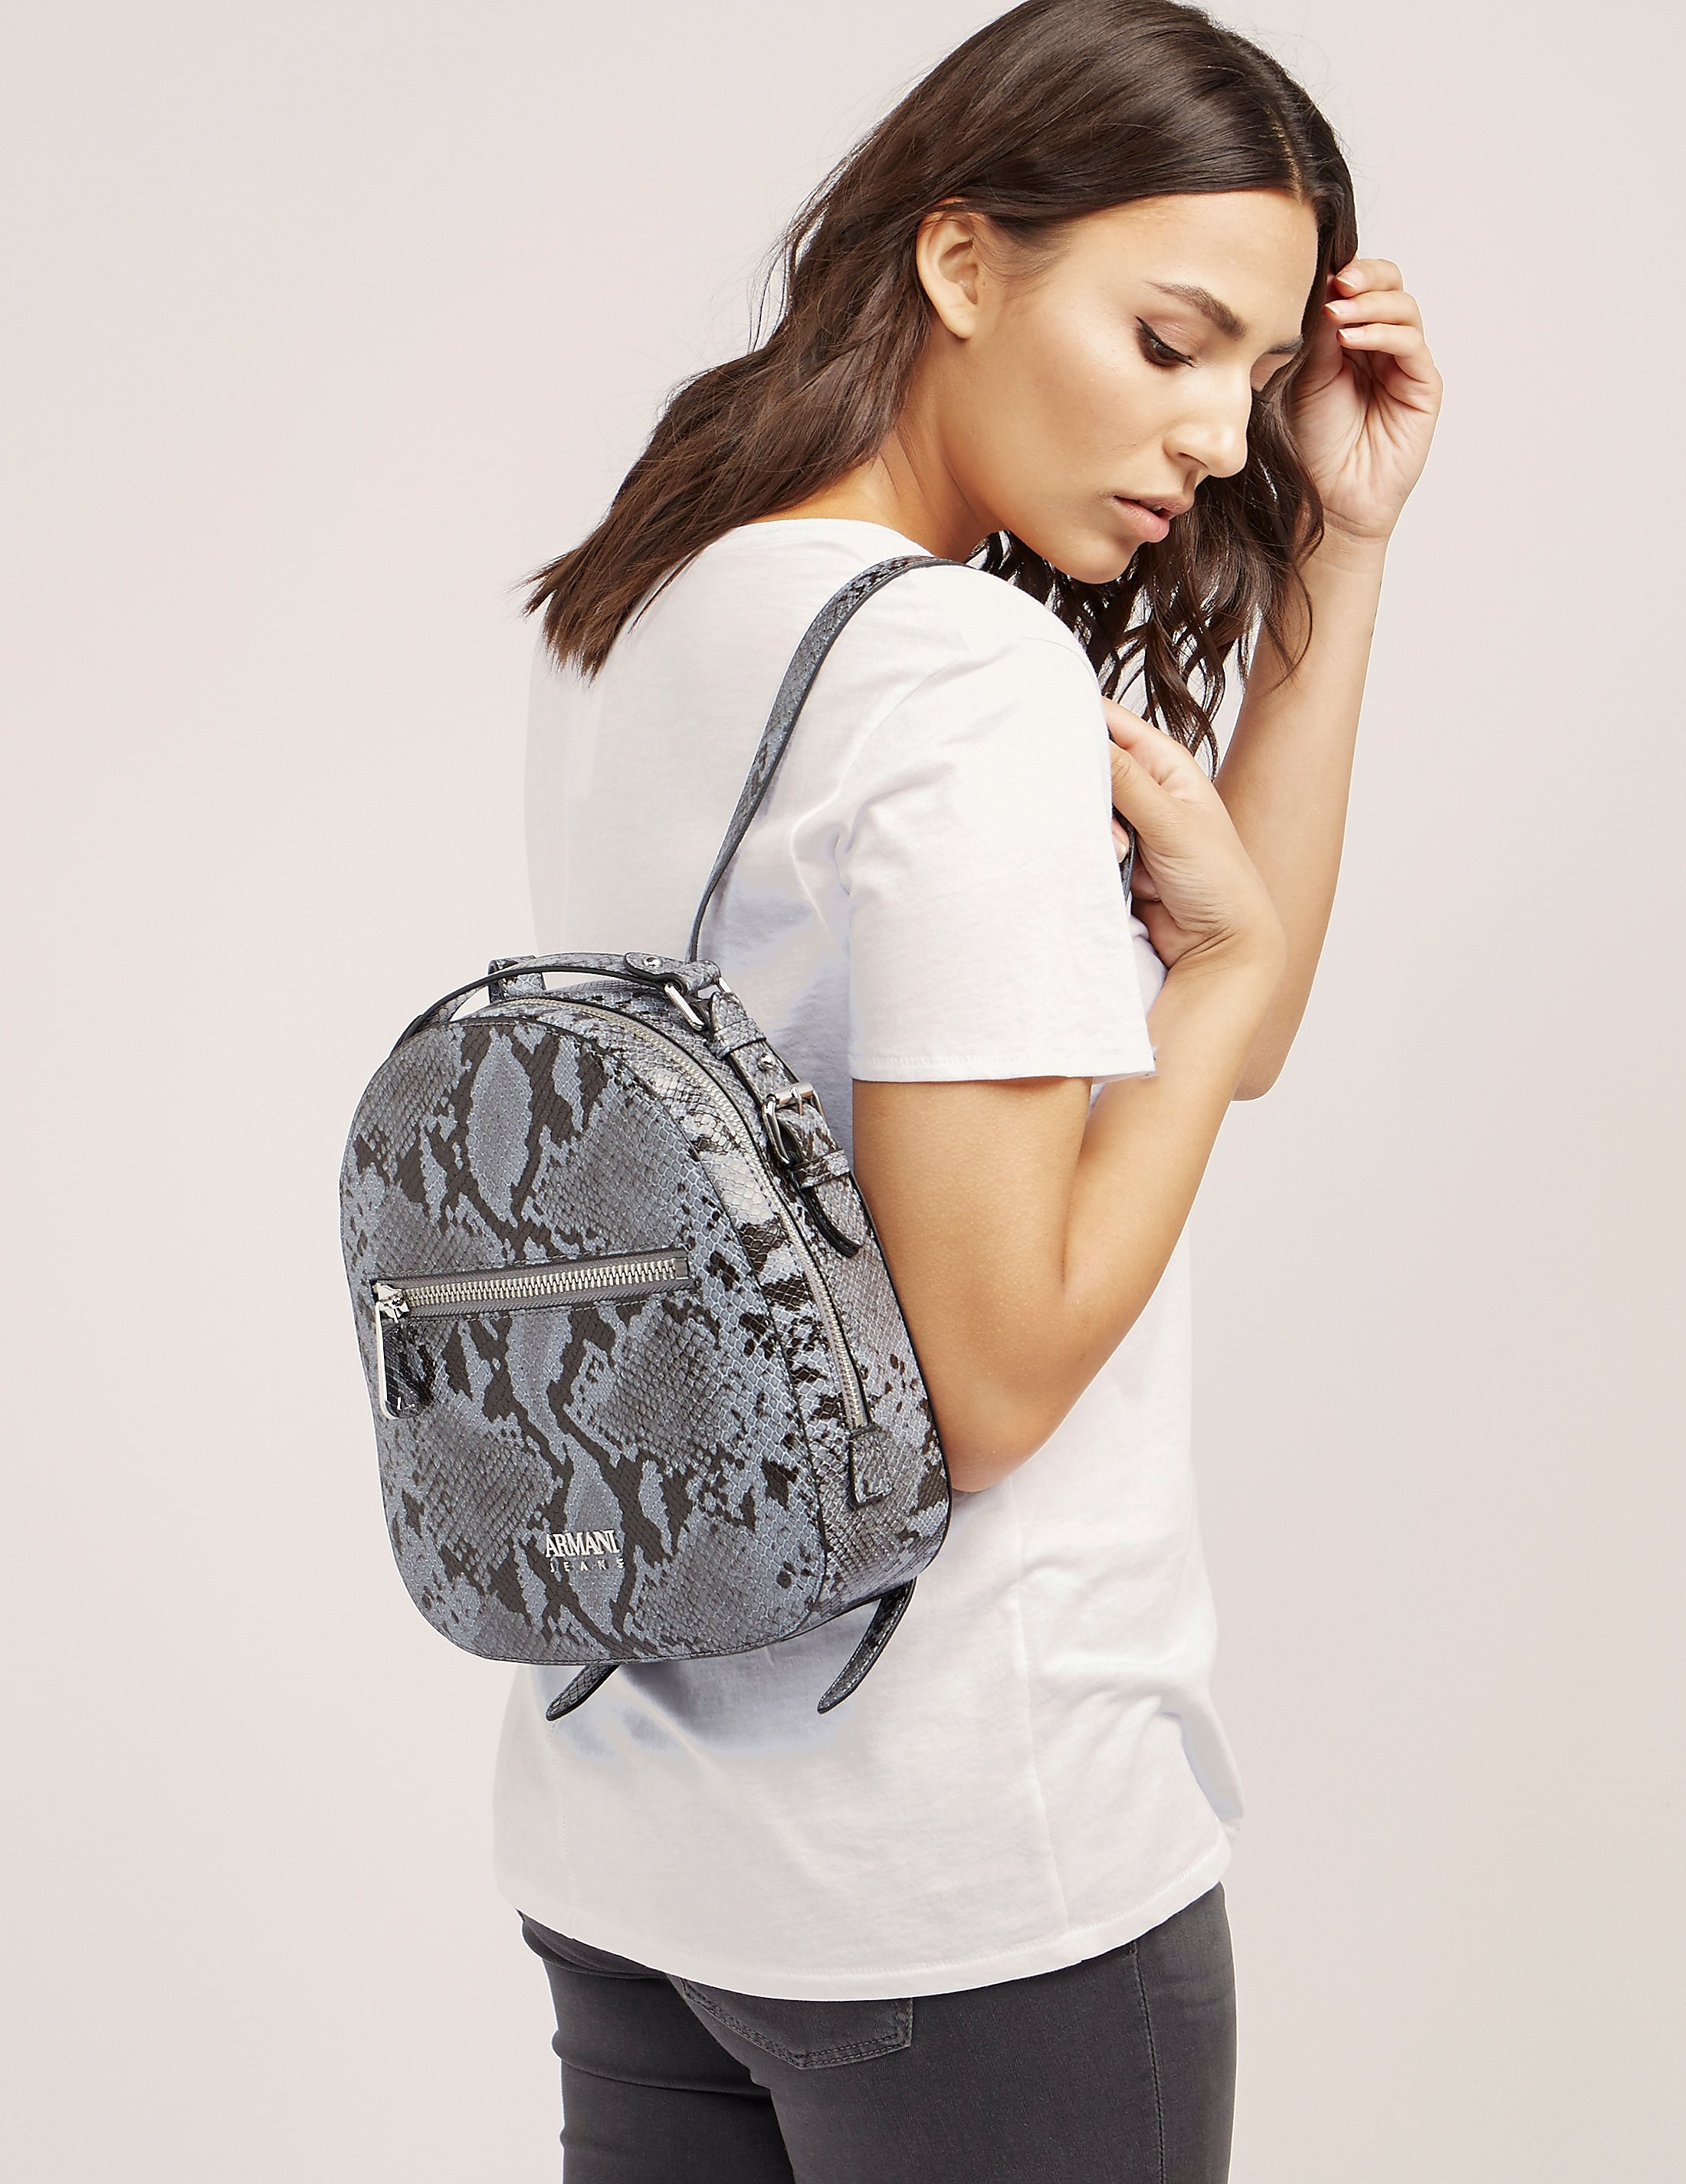 Armani Jeans Snakeskin Backpack